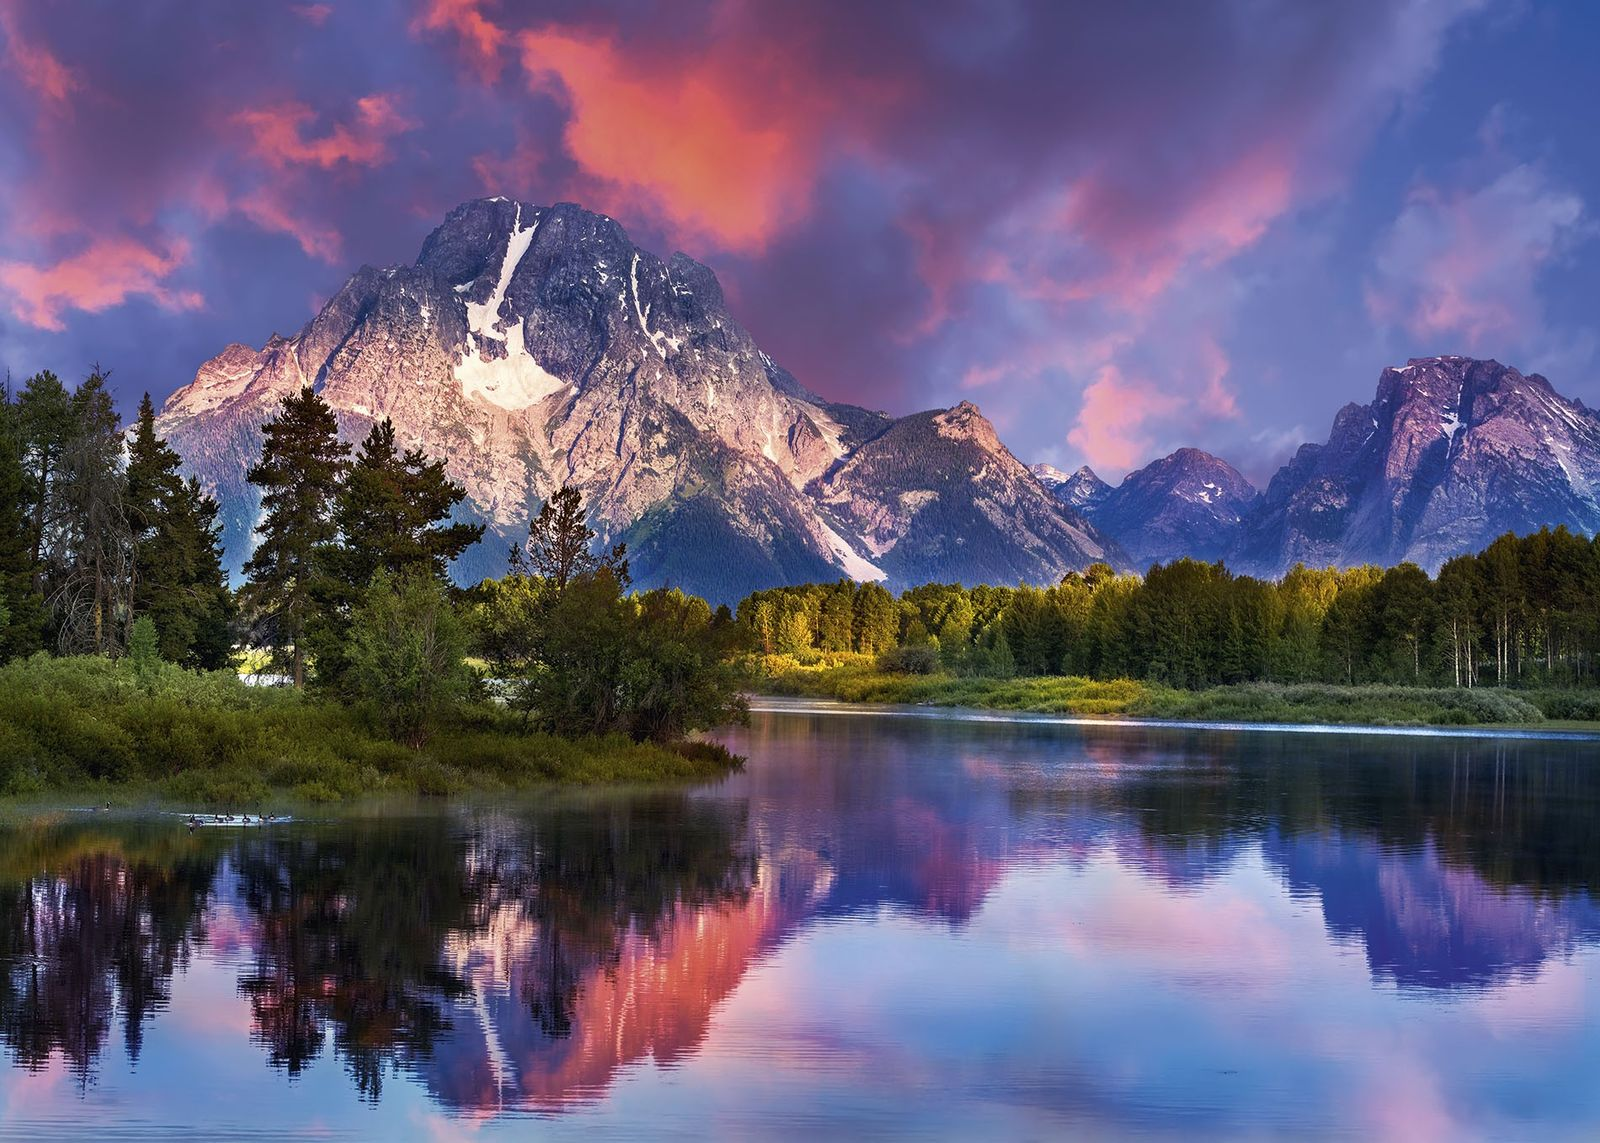 Sunrise at the Oxbow Bend of the Snake River, Wyoming